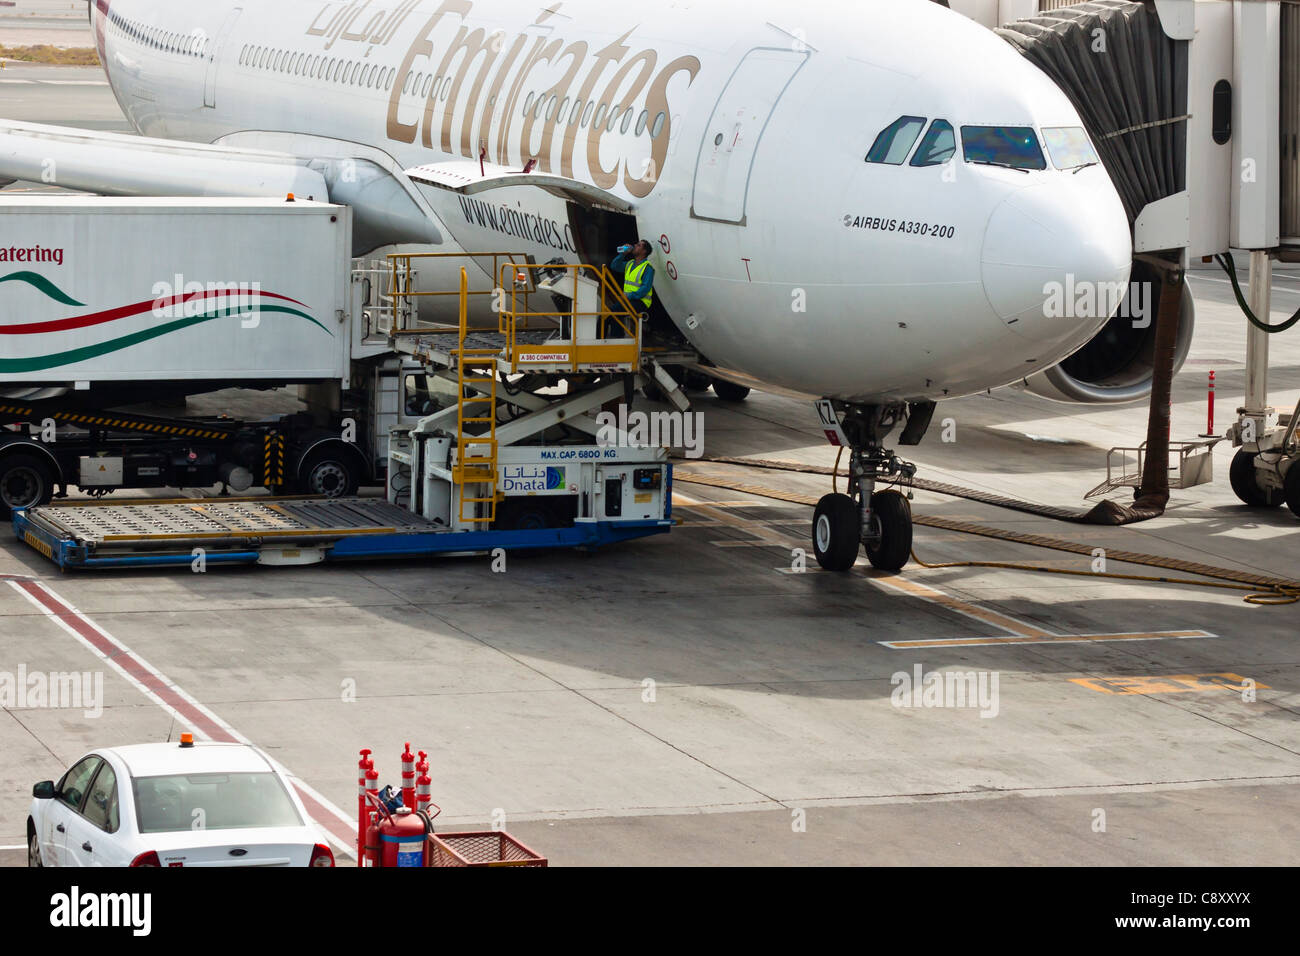 Detail of Airbus A330-200, Dubai International Airport, United Arab Emirates. - Stock Image